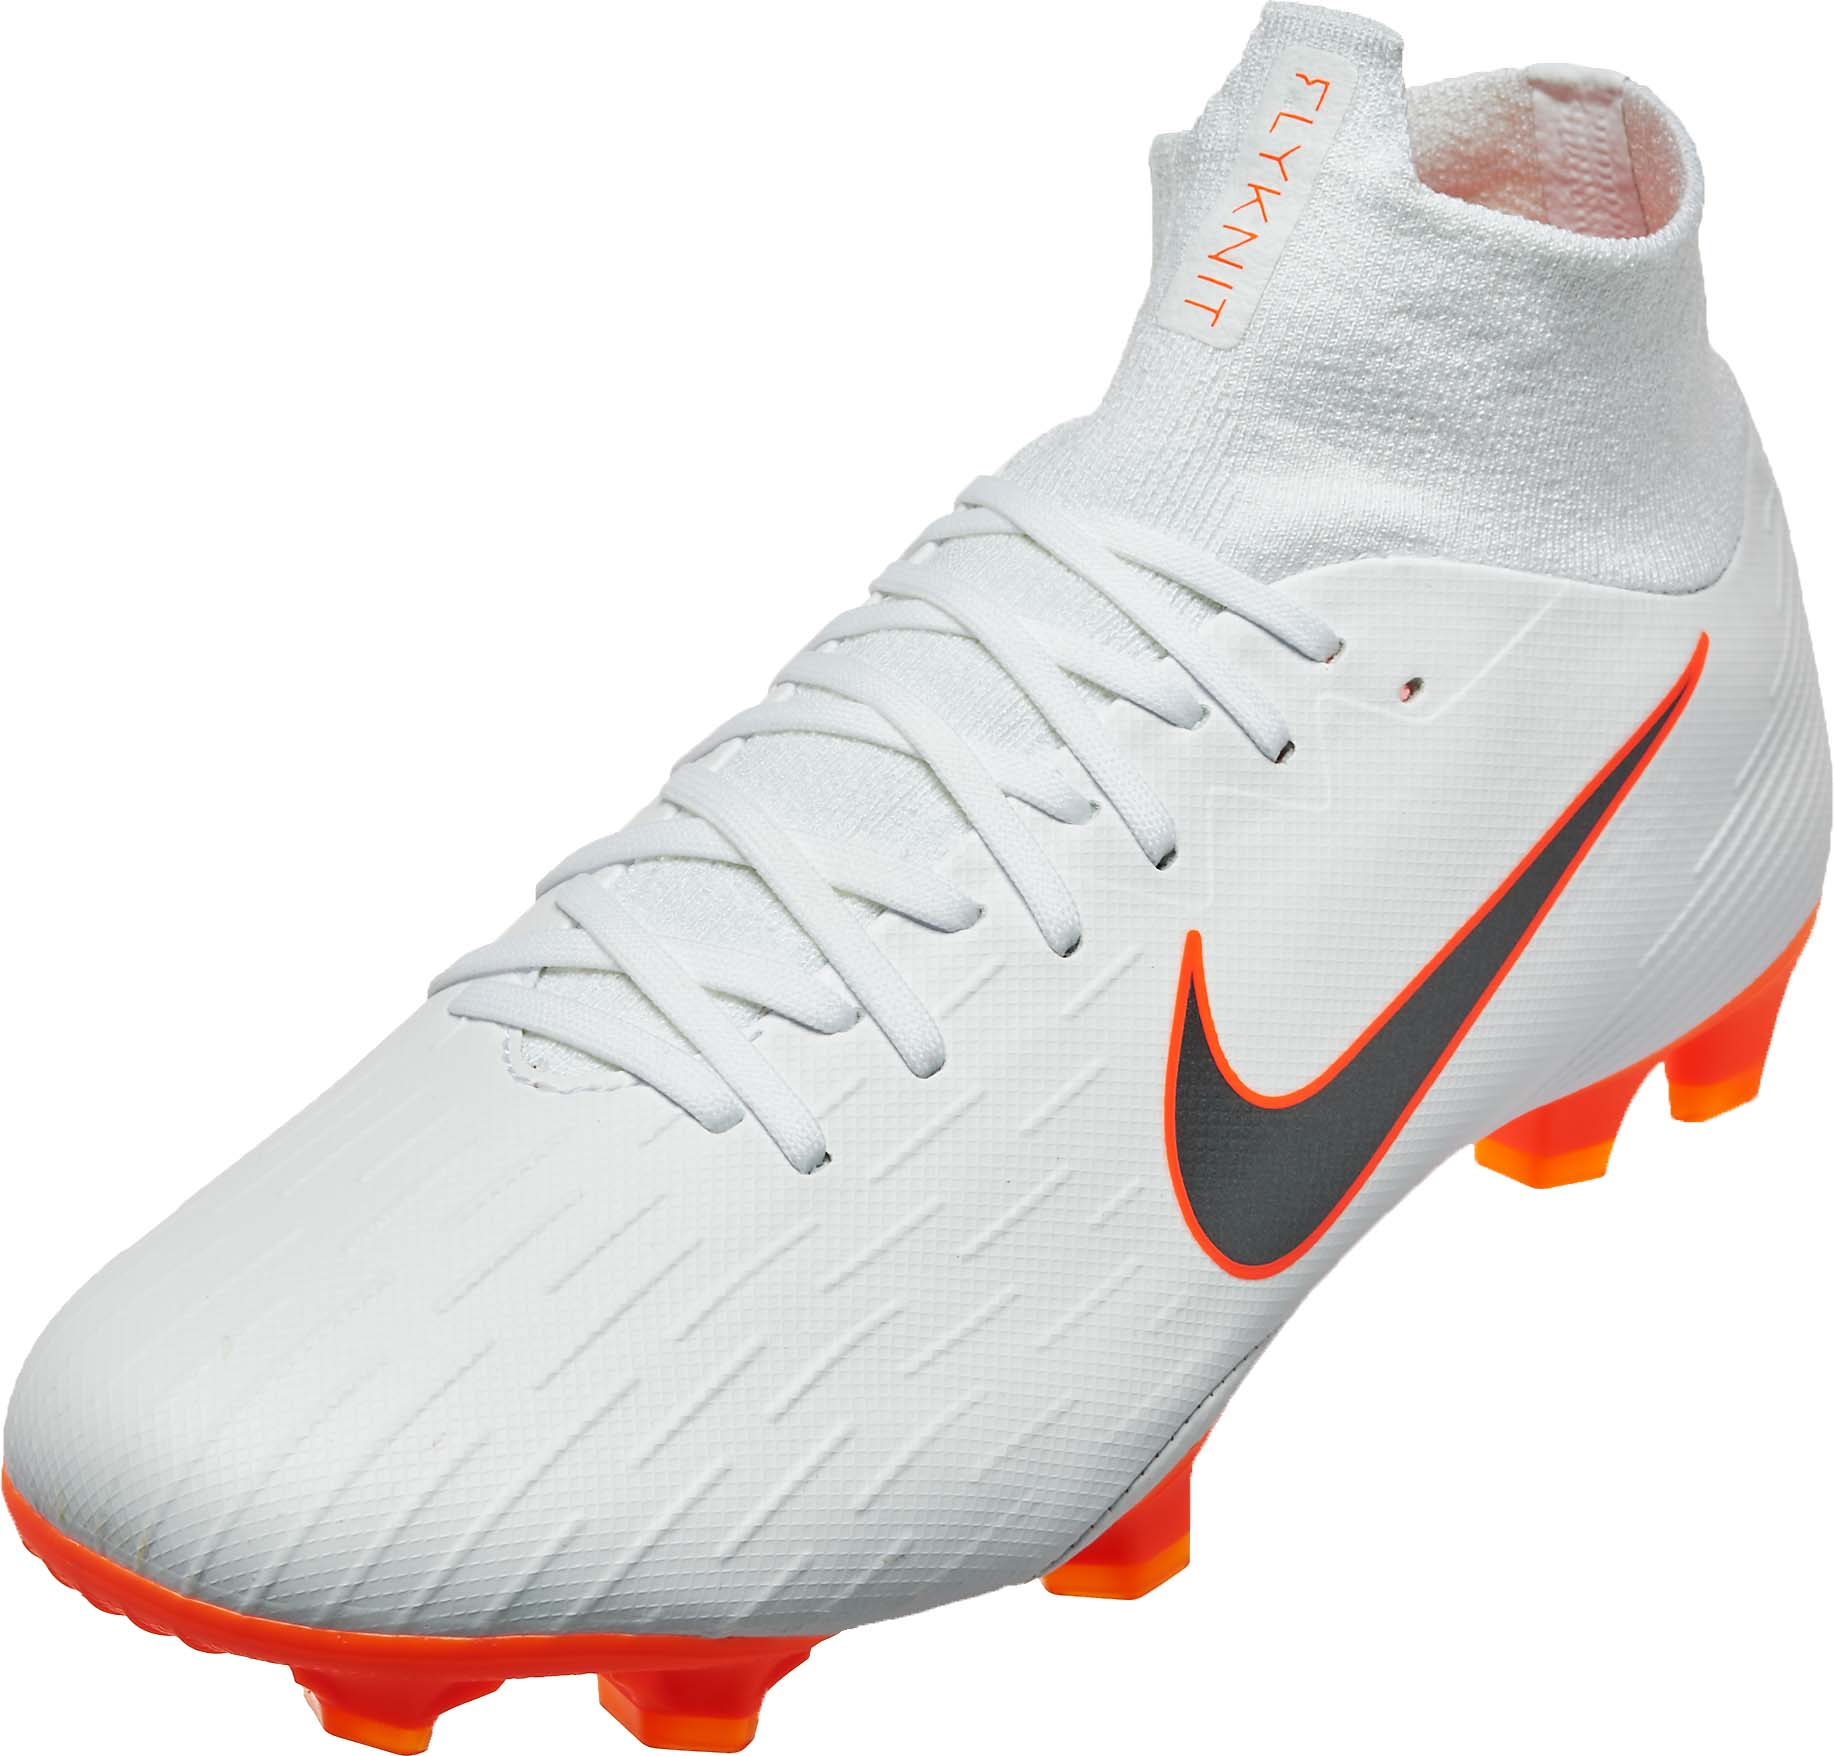 new arrival 5315a 71c45 Nike Mercurial Superfly 6 Pro FG – White/Total Orange